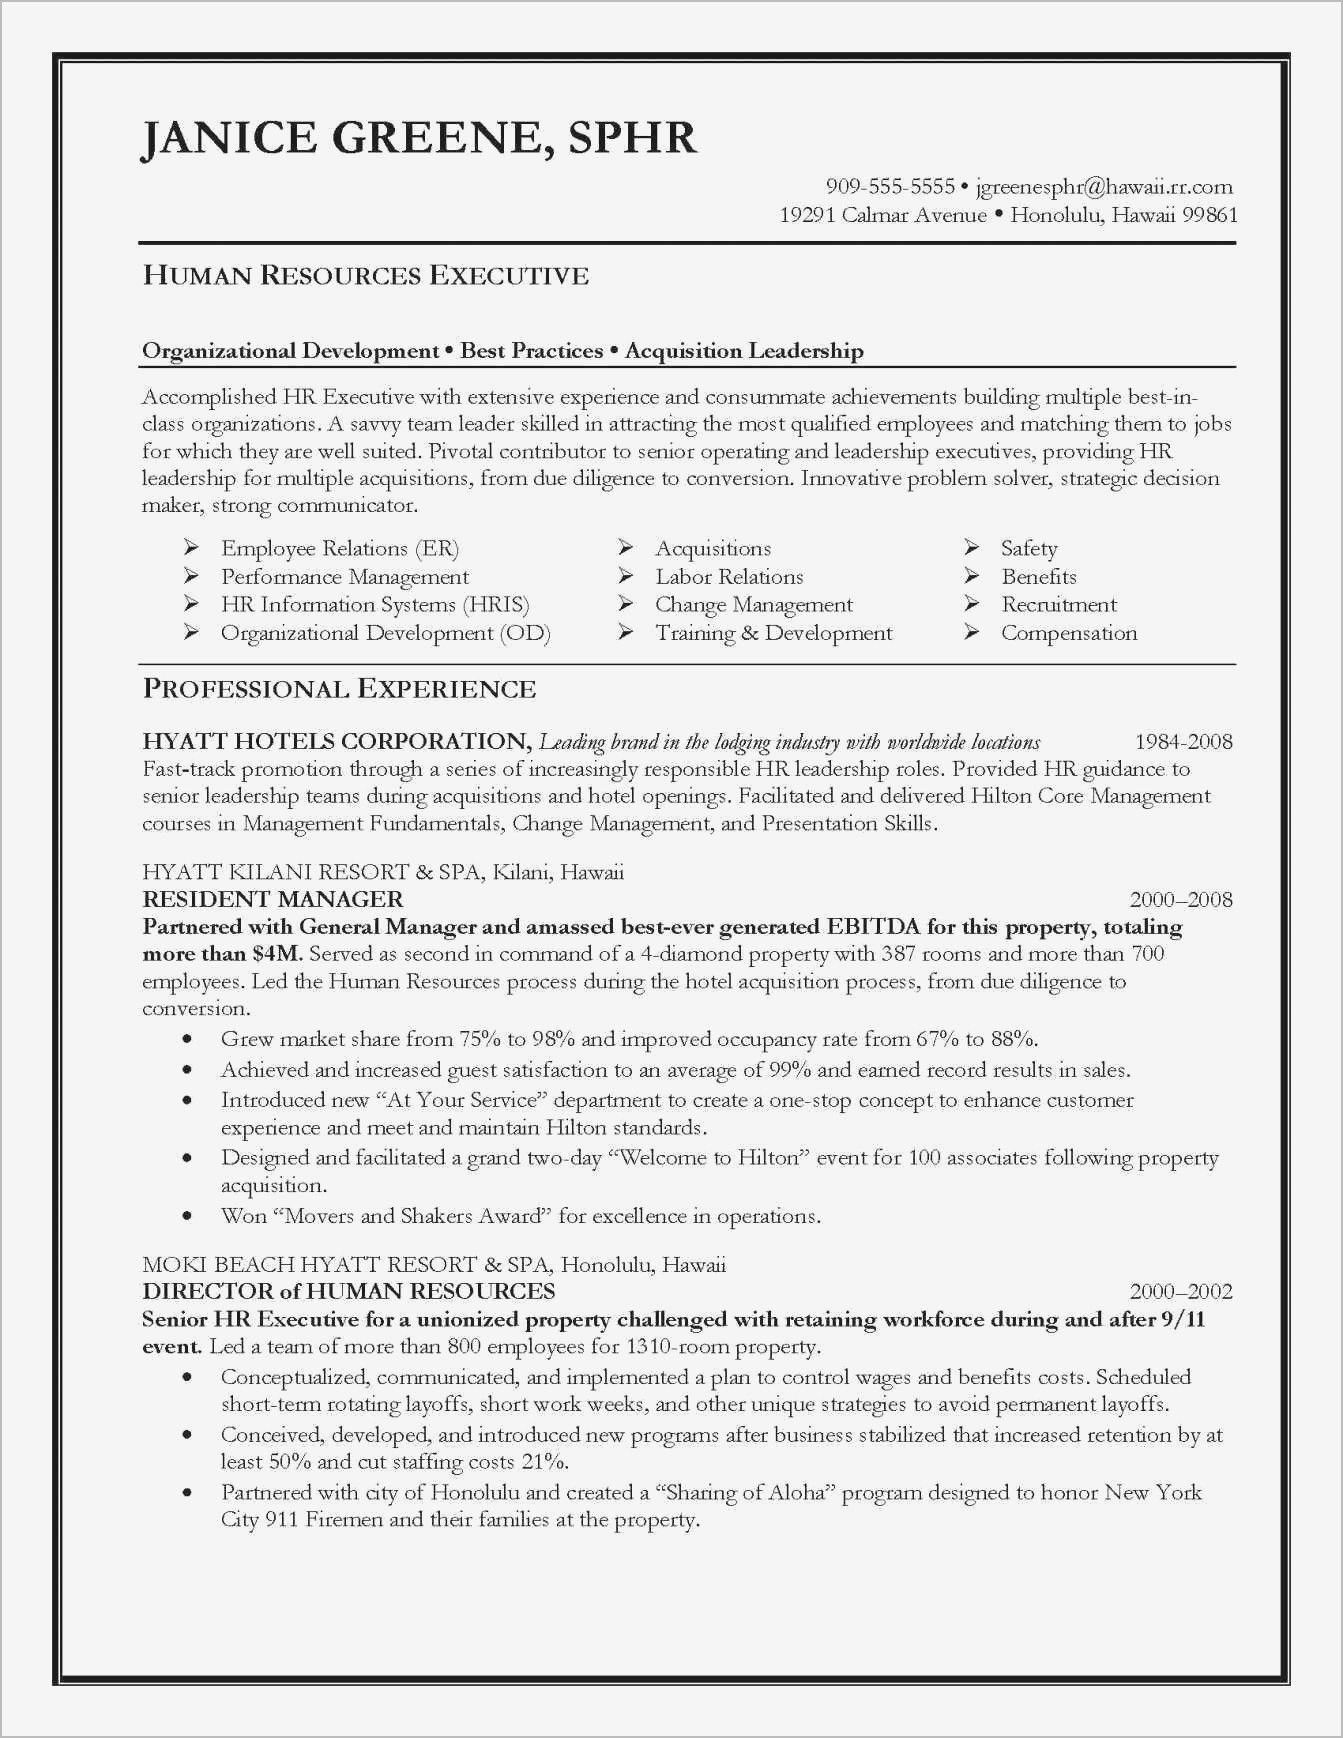 New Business Analyst Resume Templates Human Resources Cover